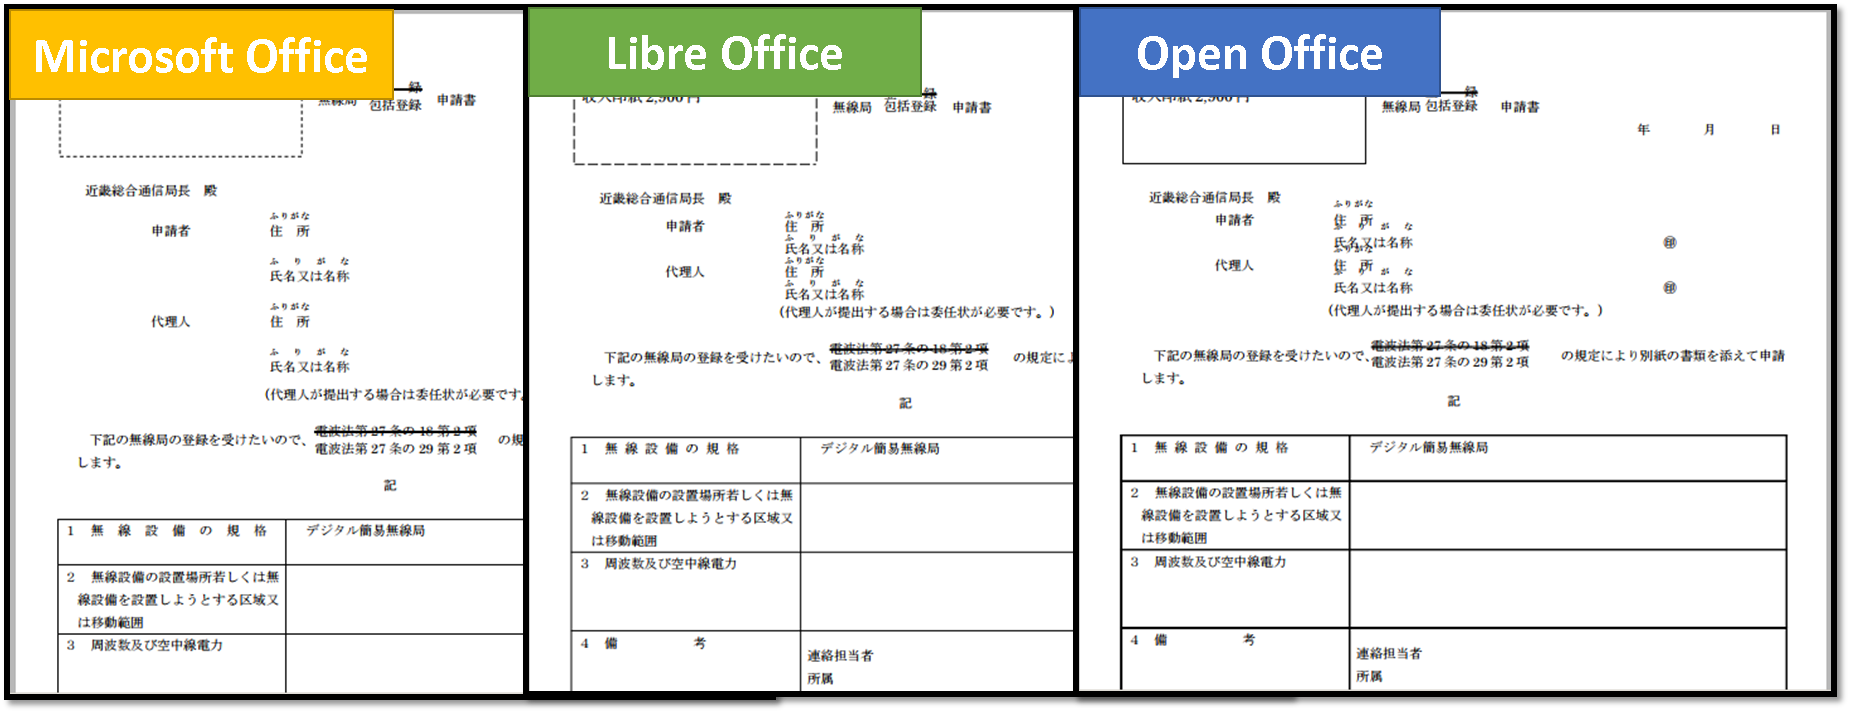 無料Officeの2強を徹底比較 OpenOffice vs LibreOffice | 本気